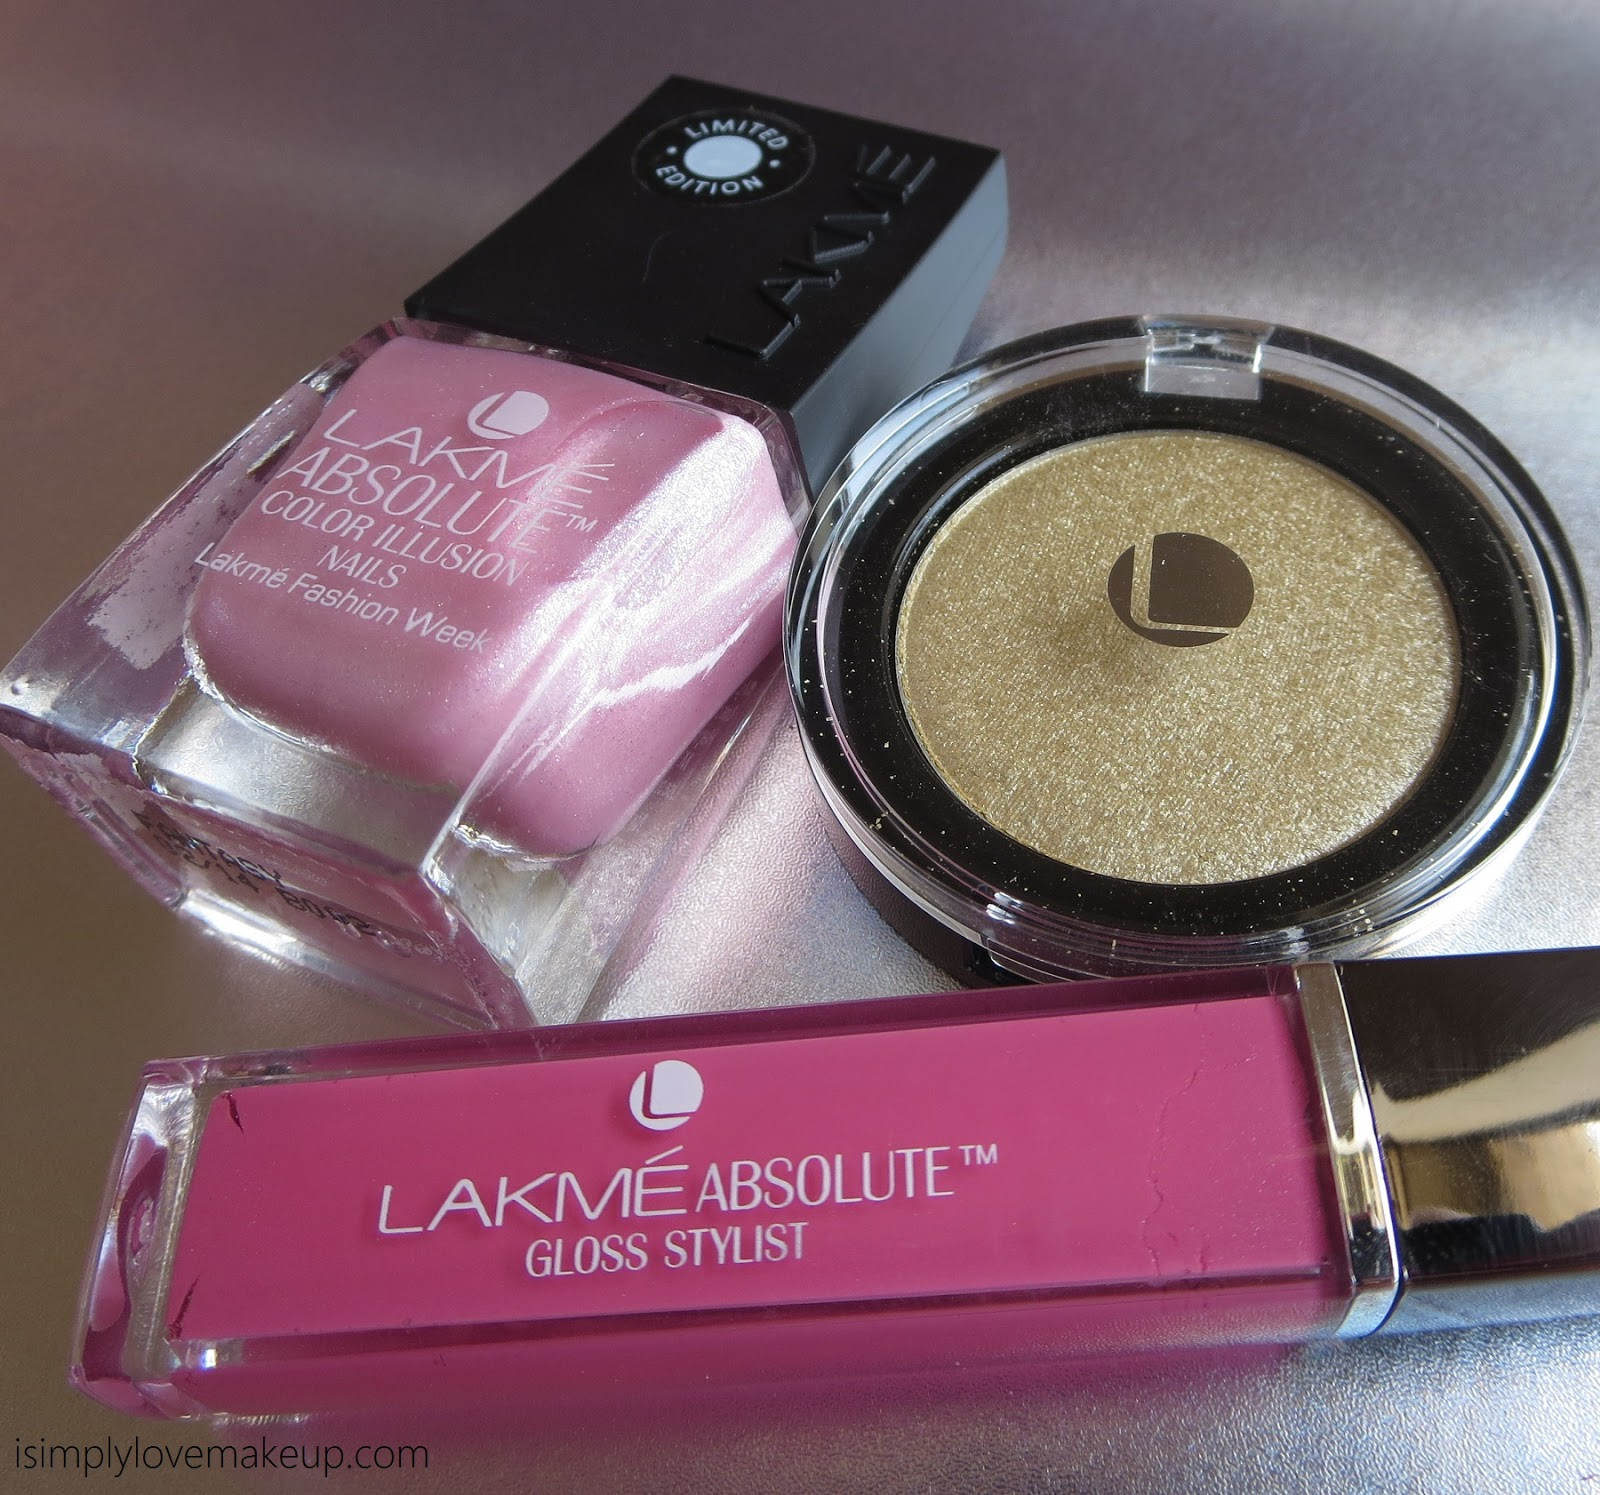 Lakme Absolute Illusion by Rajesh Pratap Singh